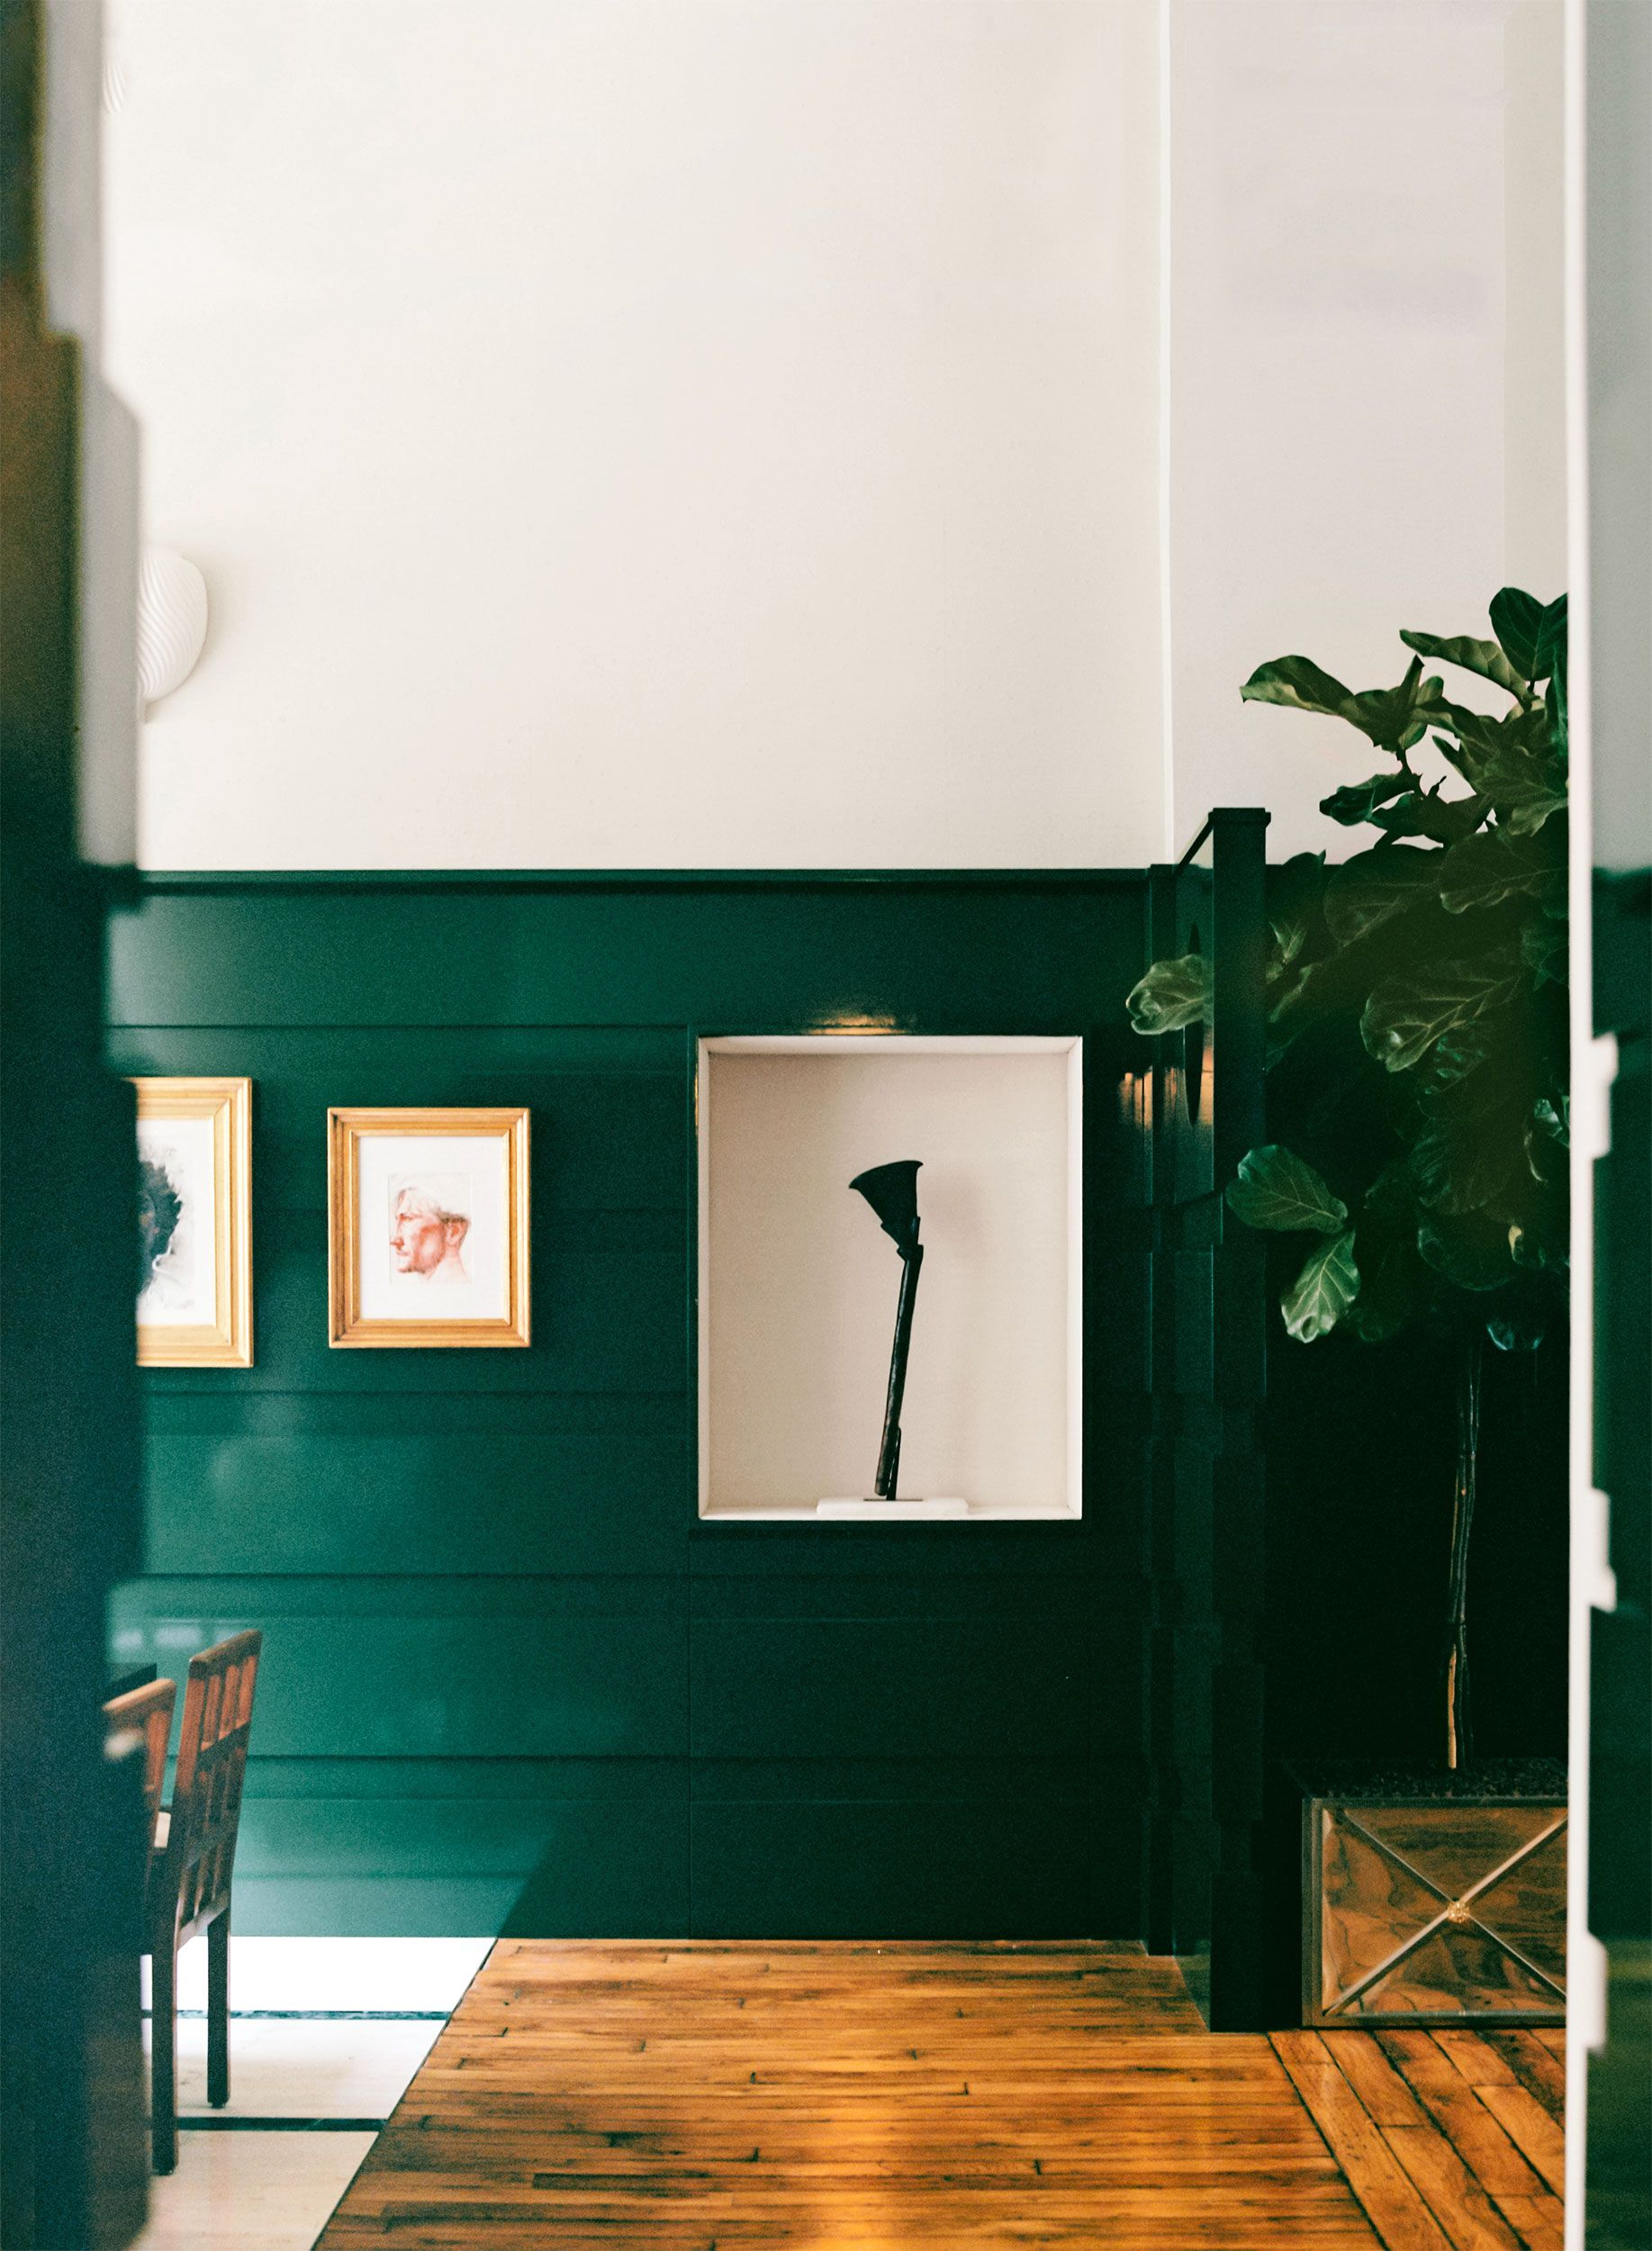 Green Lacquer Completely Douses This Über-Chic Parisian Loft